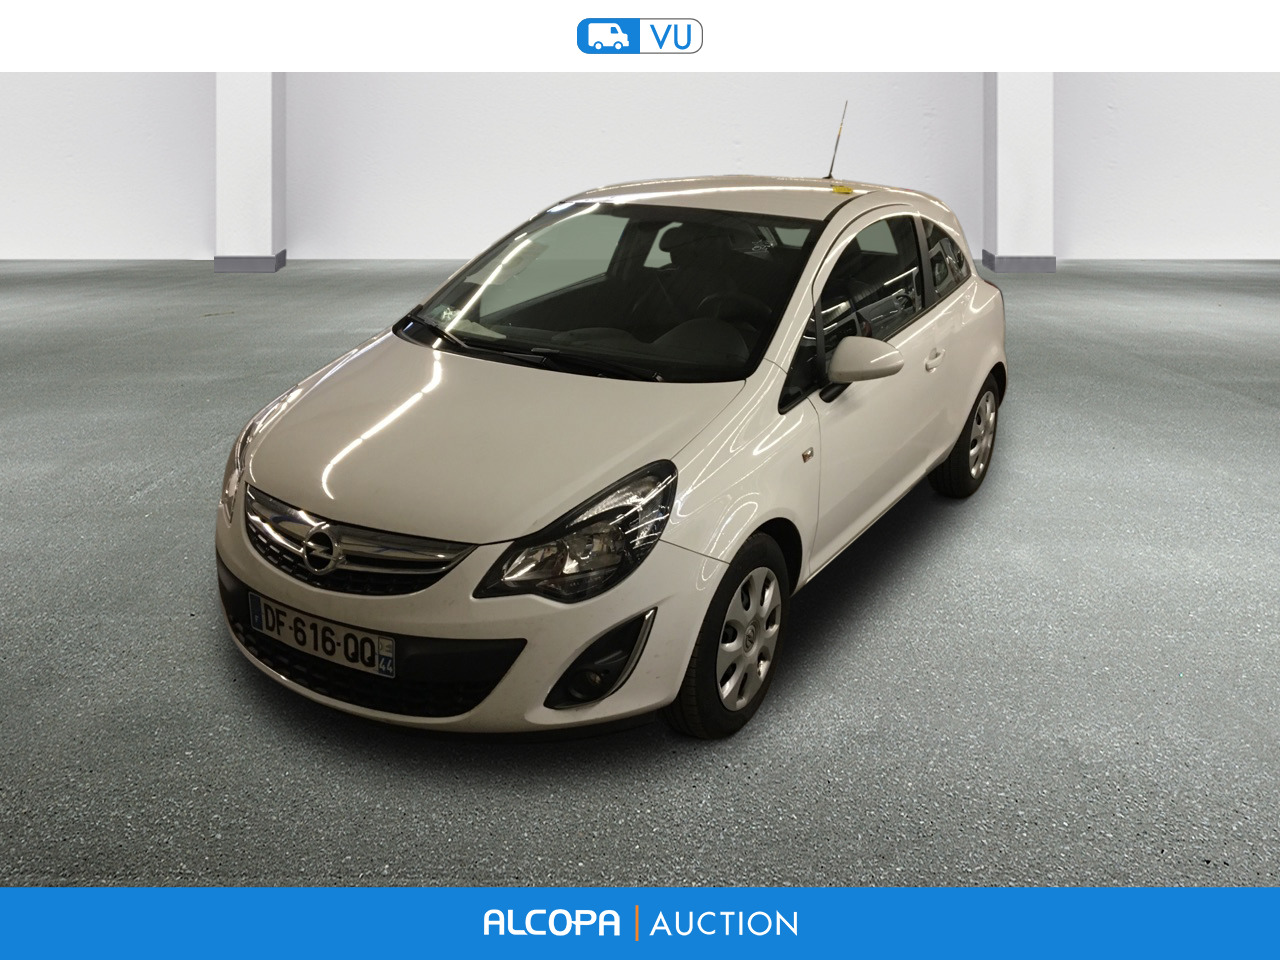 opel corsa corsa affaires 1 3 cdti 75 connect 3p alcopa auction. Black Bedroom Furniture Sets. Home Design Ideas